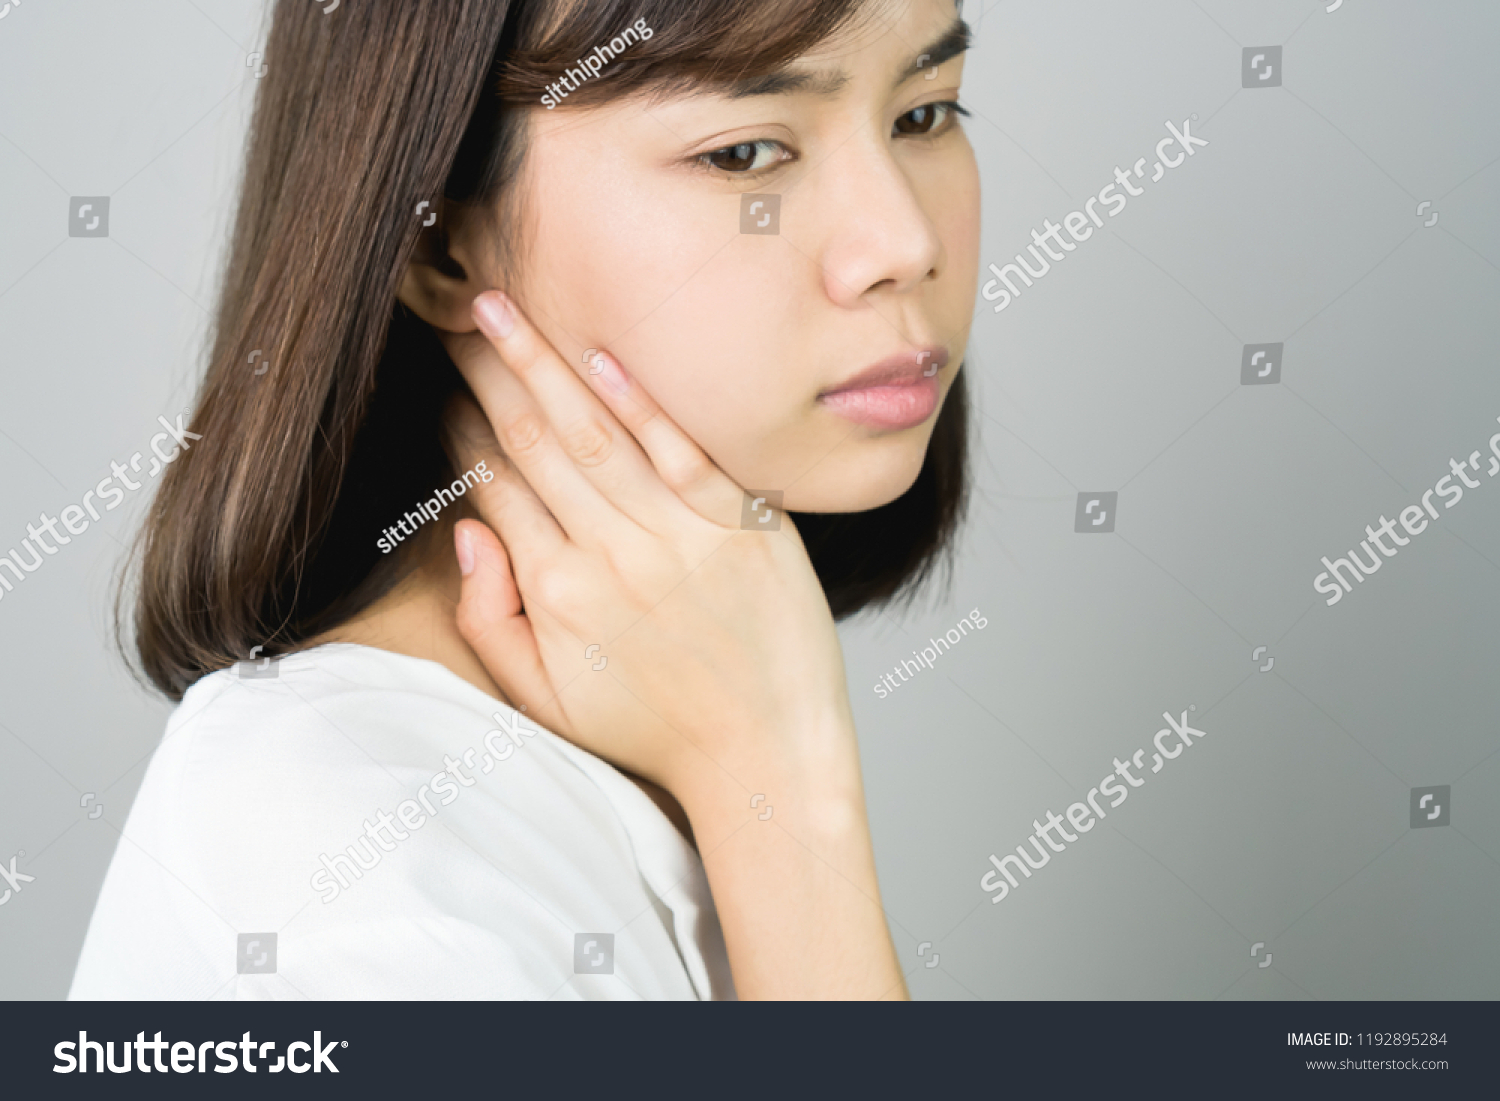 Asian girl in white casual dress catch that shoulder, Because of the pain  of hard